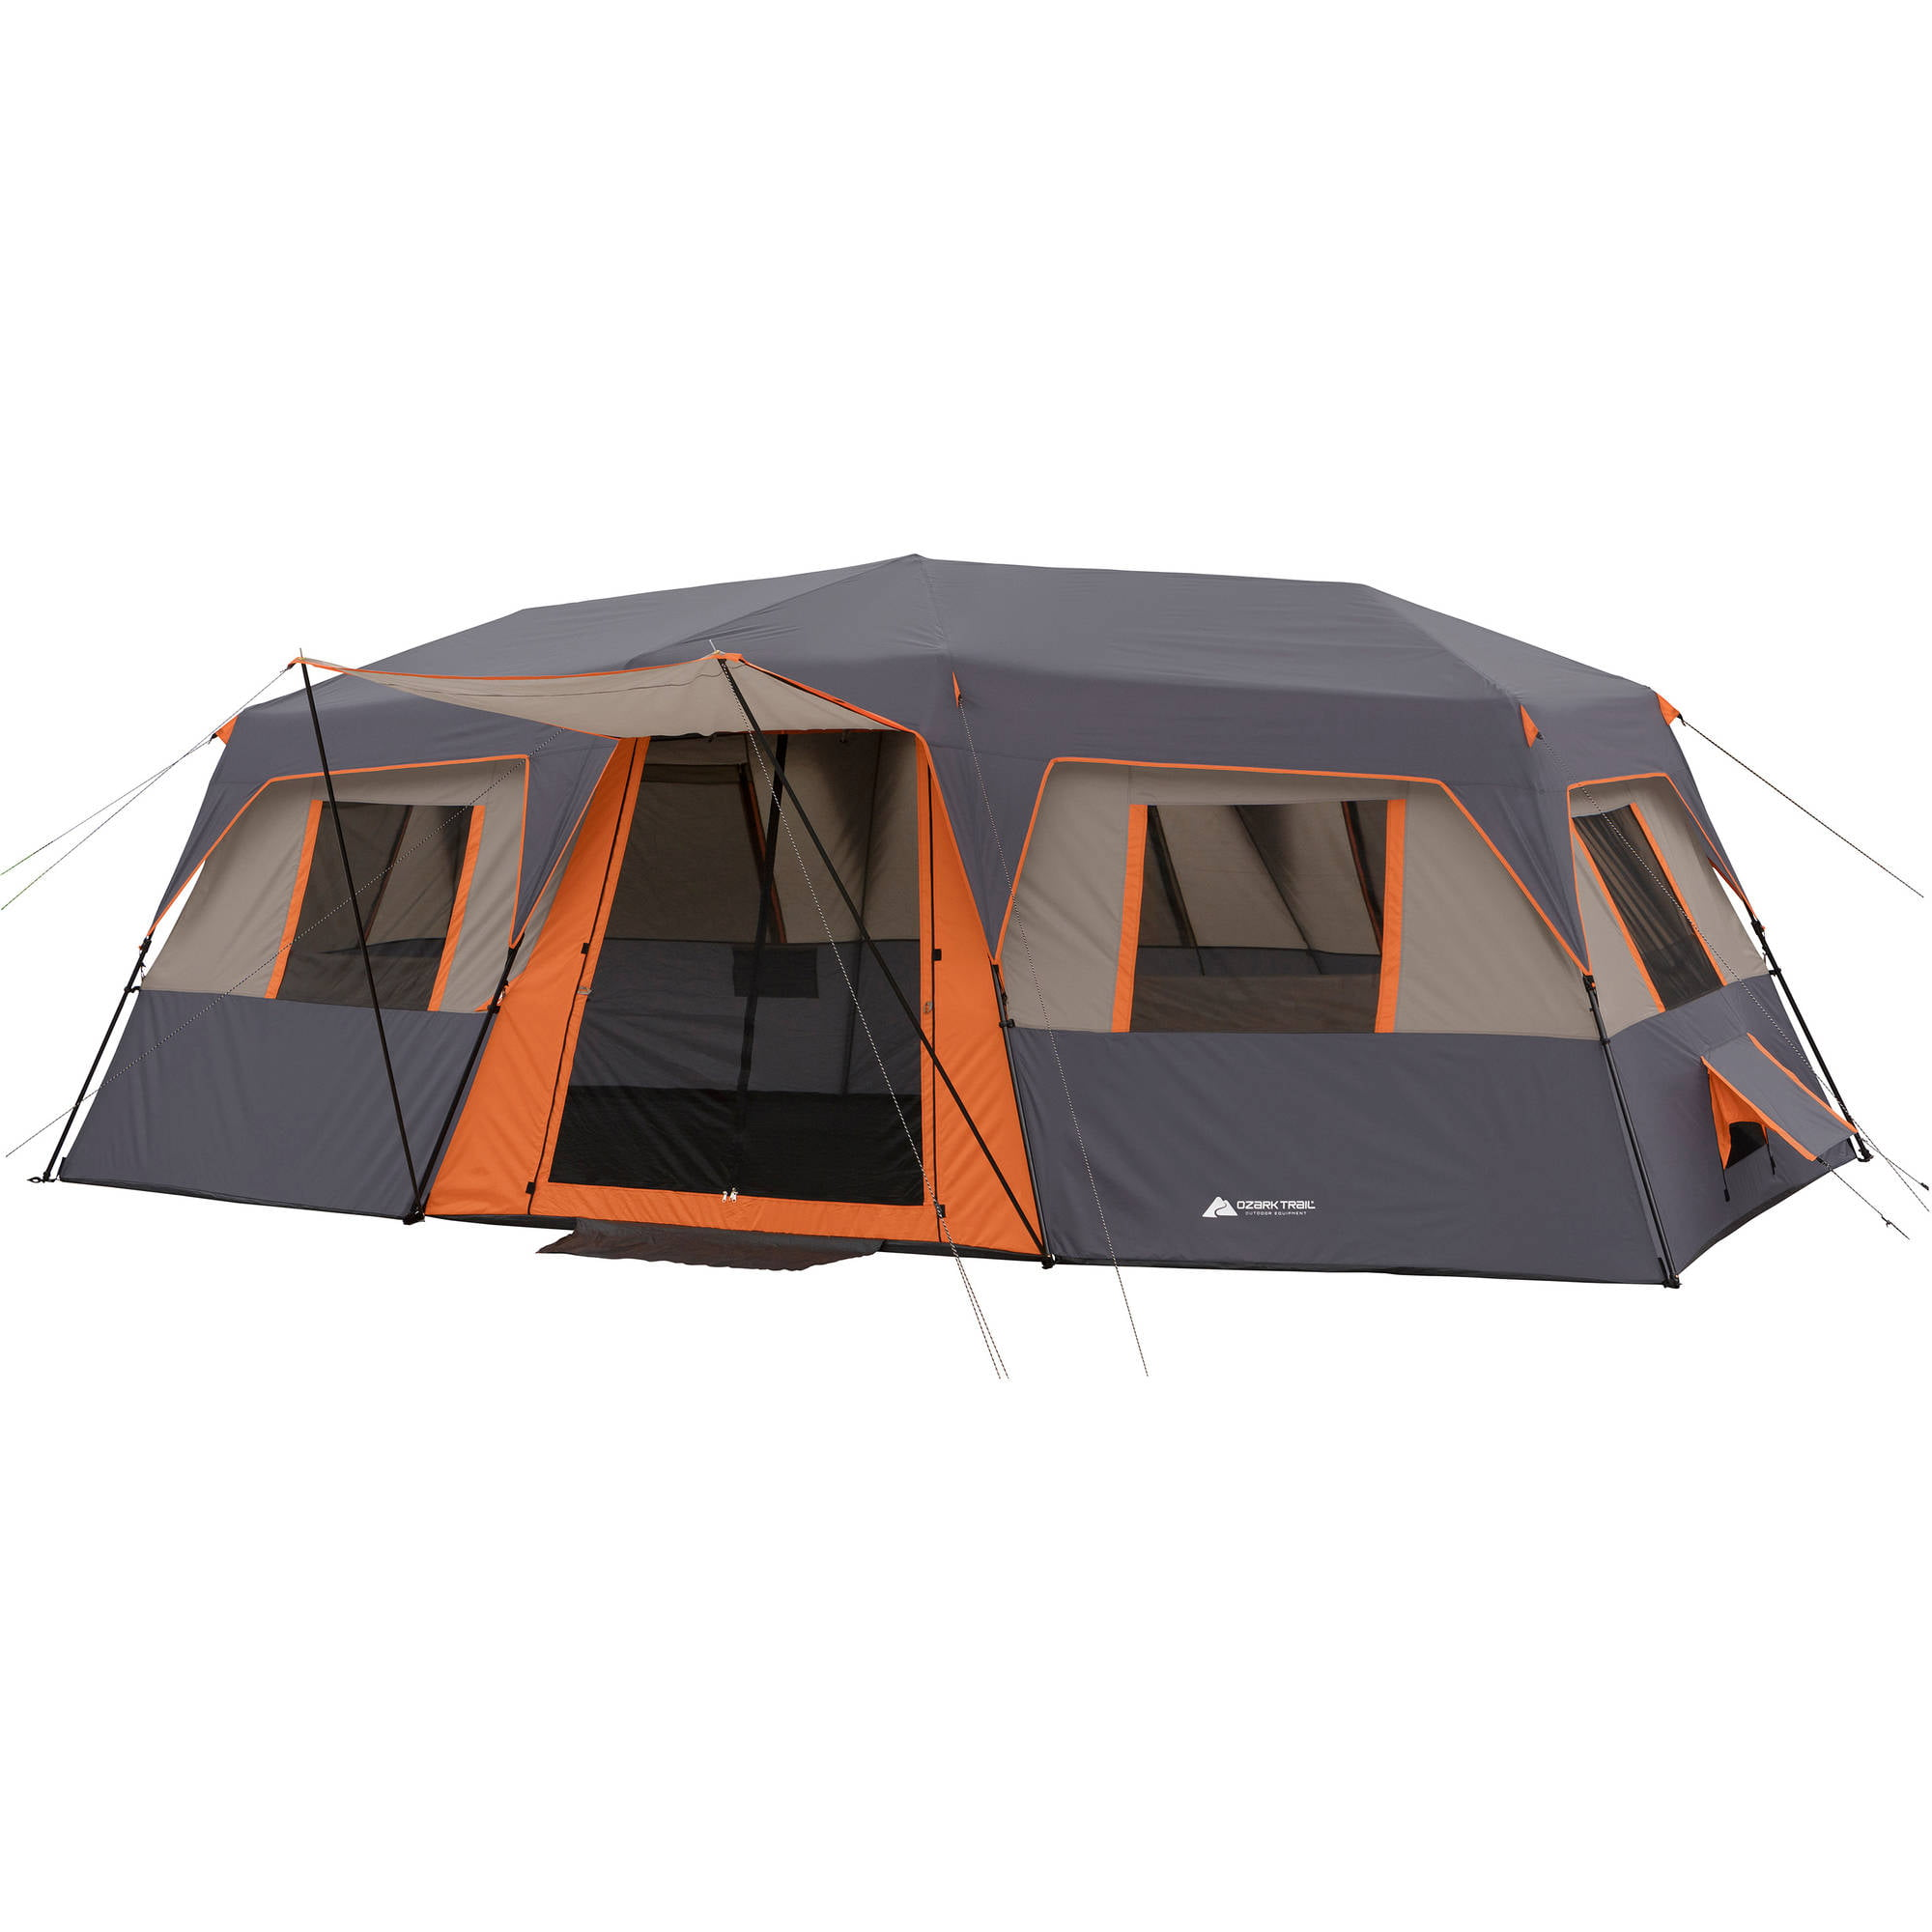 Charmant Tahoe Gear Ozark 16 Person 3 Season Large Family Cabin Tent, Blue |  TGT OZARK 16   Walmart.com